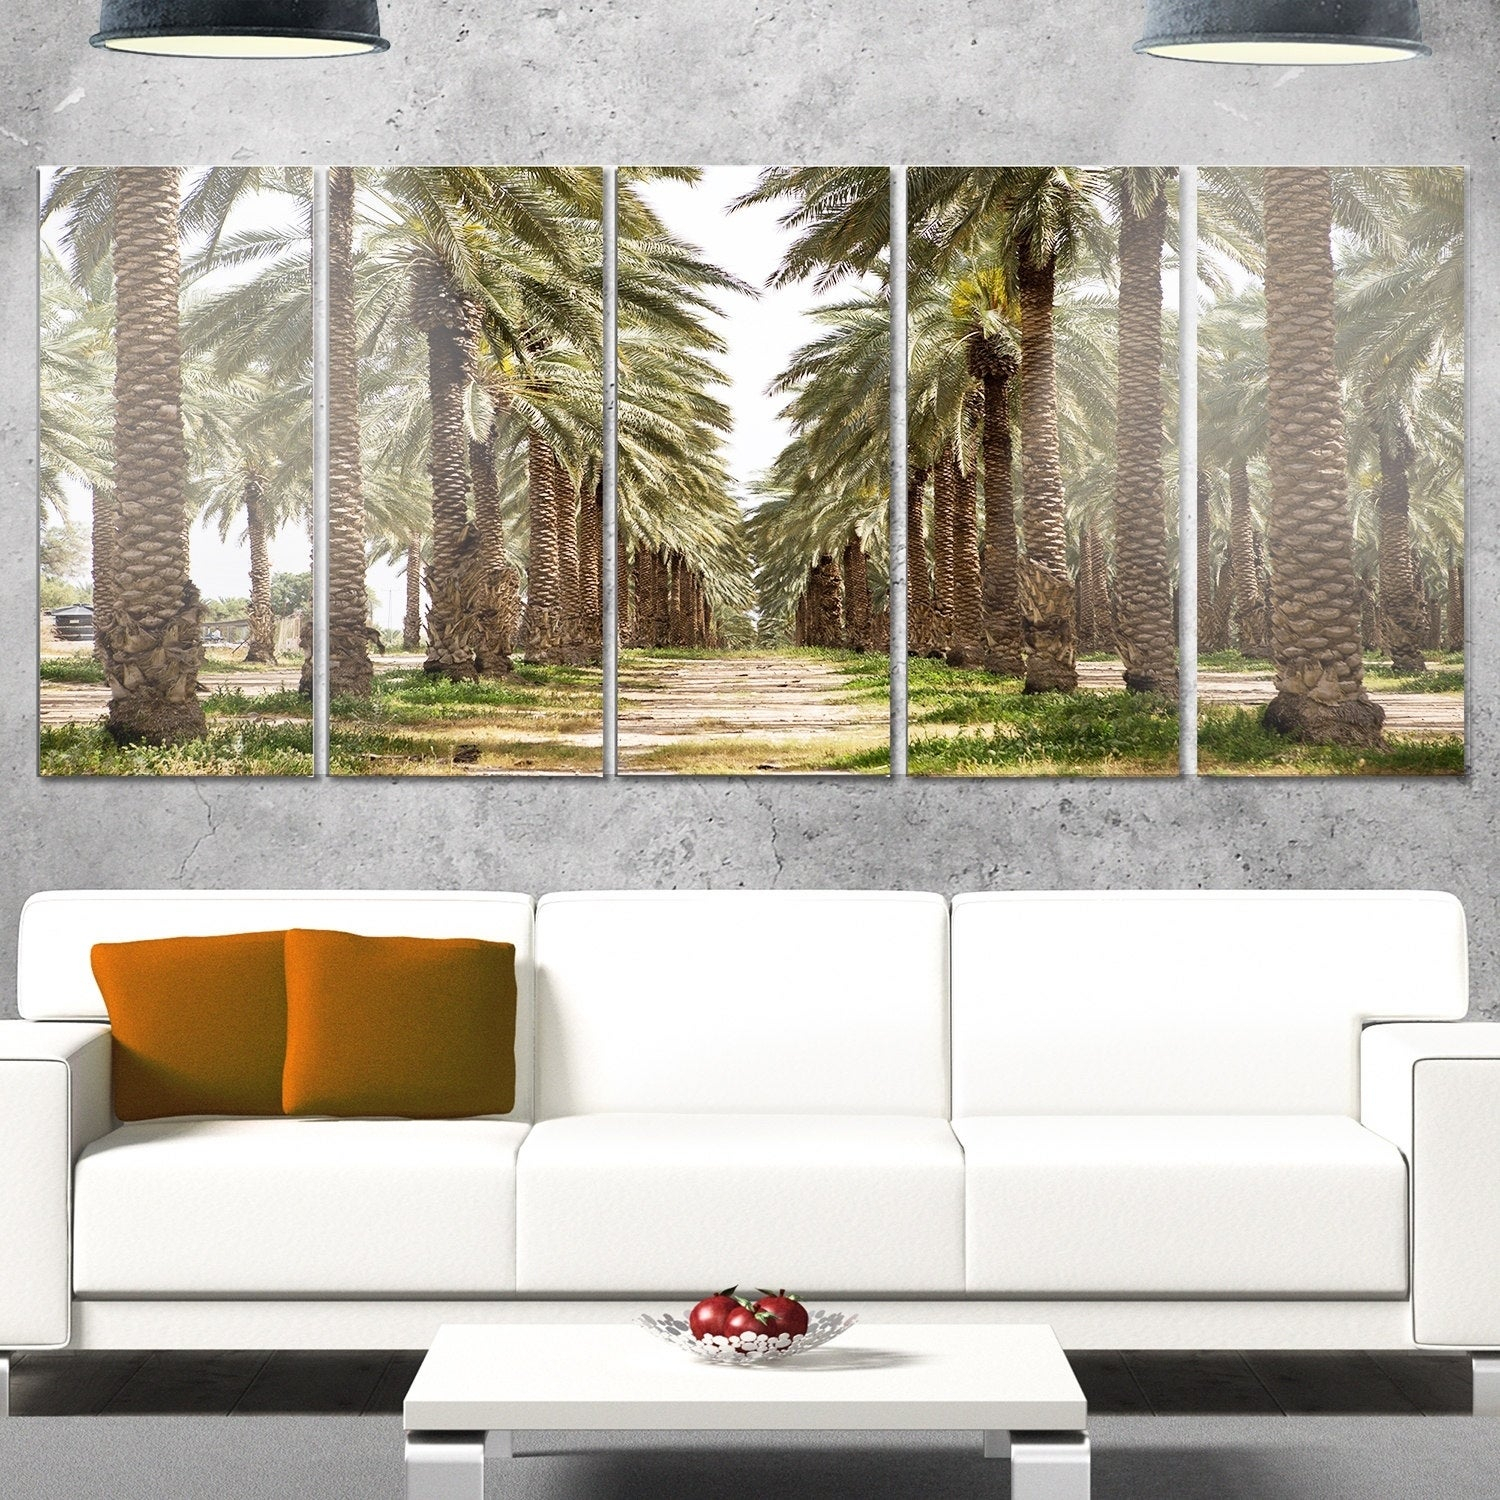 Phase1 Designart 'date Palm Plantation Photography' Modern Forest Glossy Metal Wall Art Intended For Contemporary Forest Metal Wall Decor (View 22 of 30)